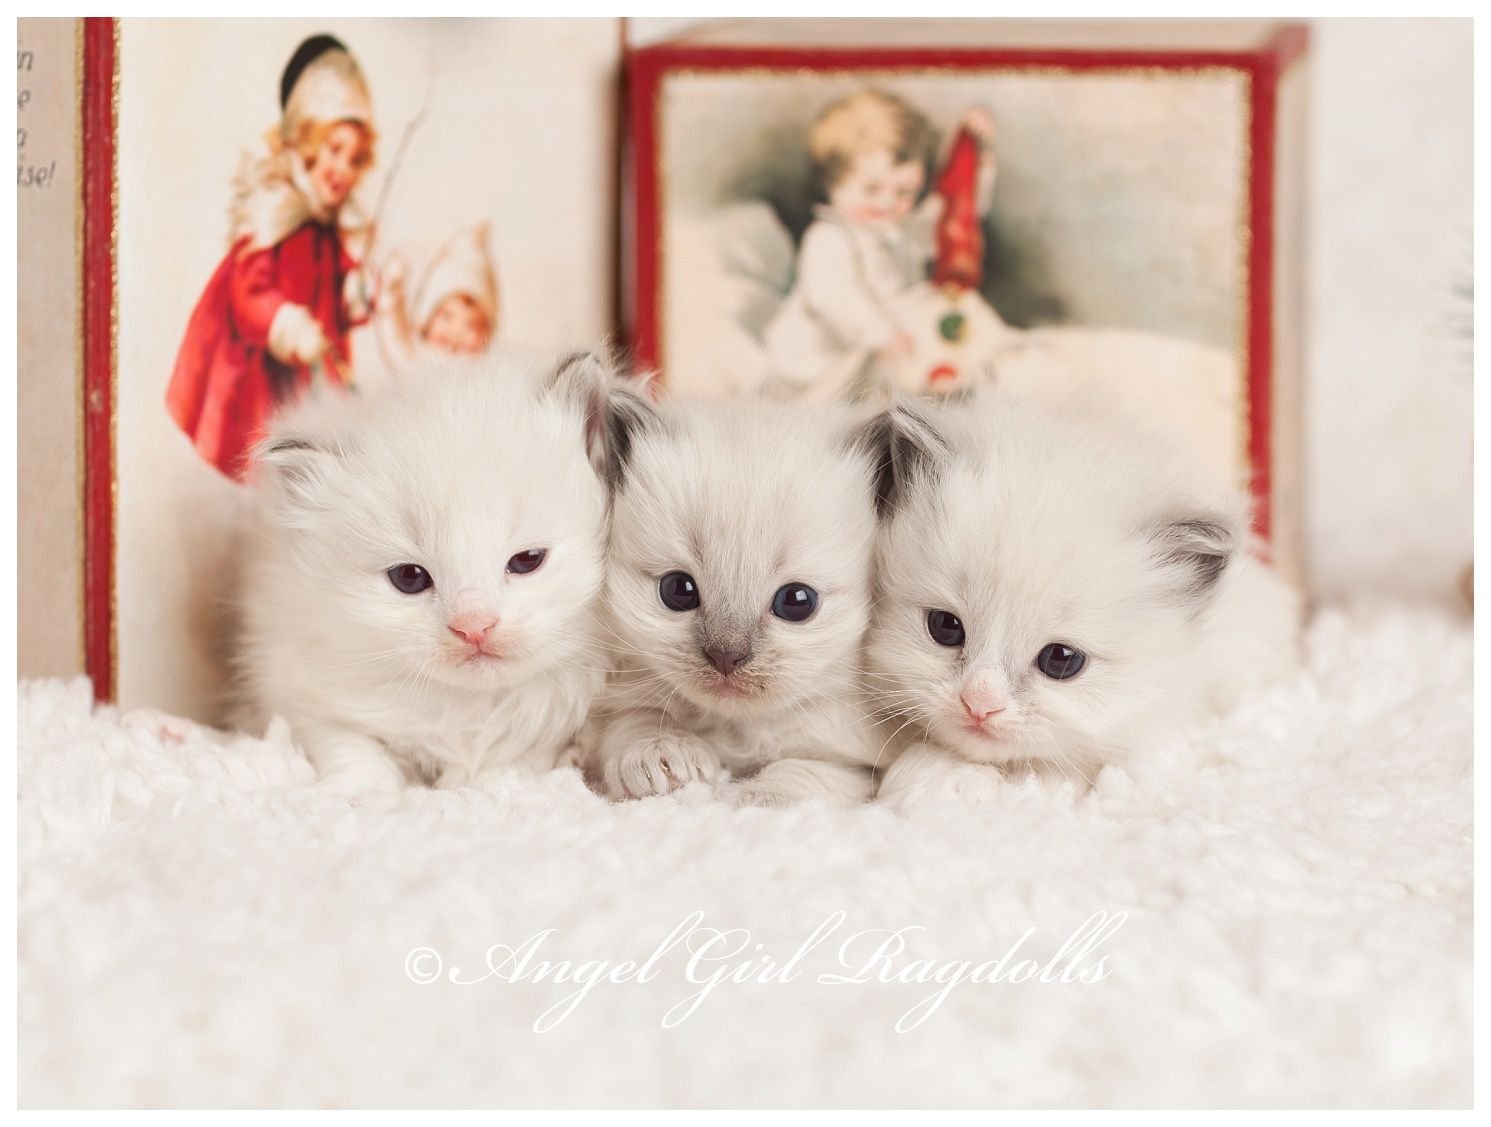 I Want To Buy These Pet Ragdoll Babies A Lilac Lynx Bicolor Rag Doll Baby A Blue Colorpoint Kitty And A Blue High Mitt Ragdoll Cat Ragdoll Kitten Pet Kitten